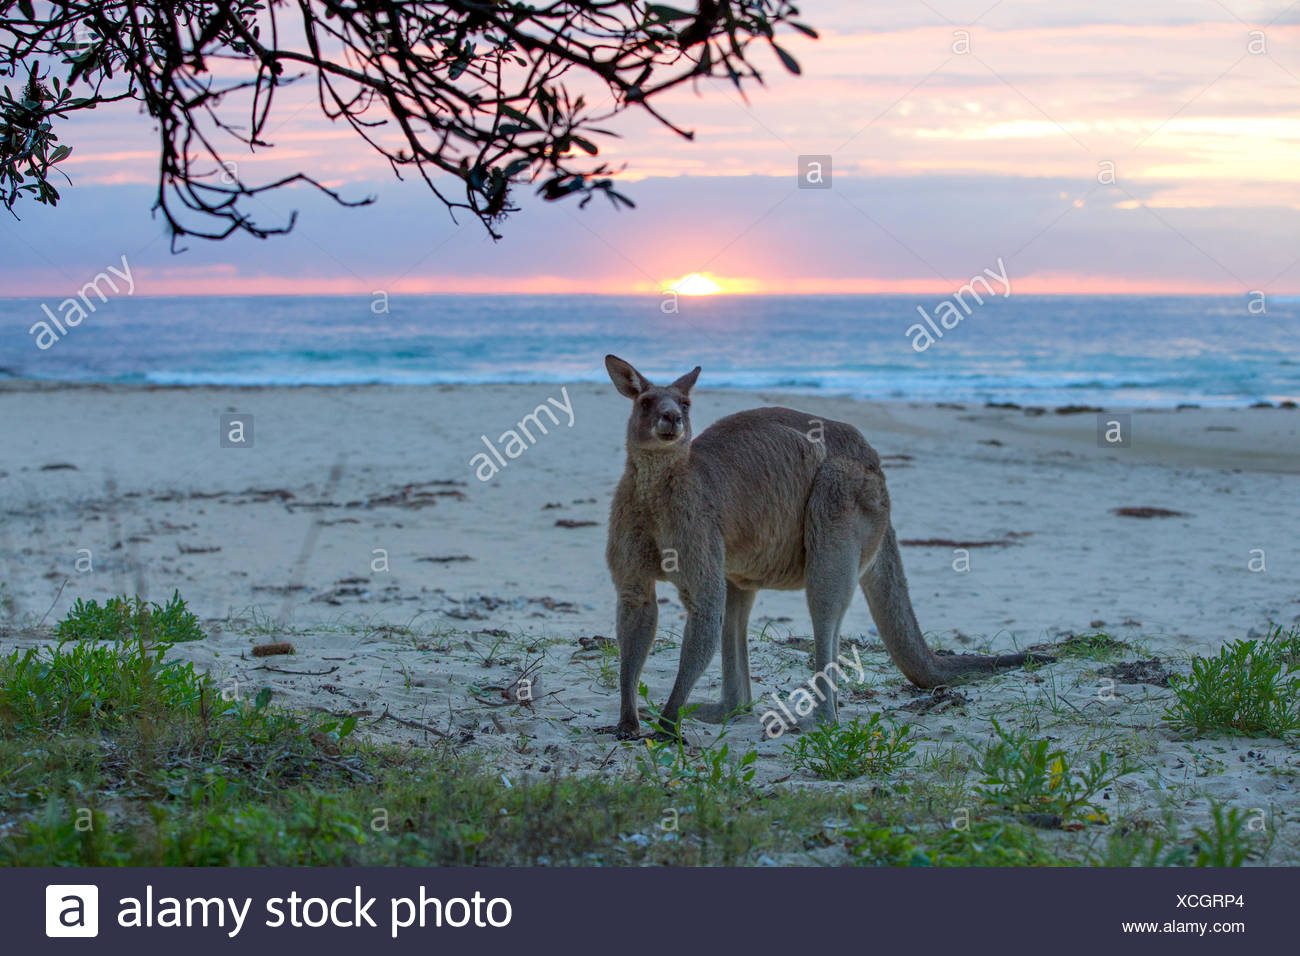 Kangaroo beach, Australie Photo Stock